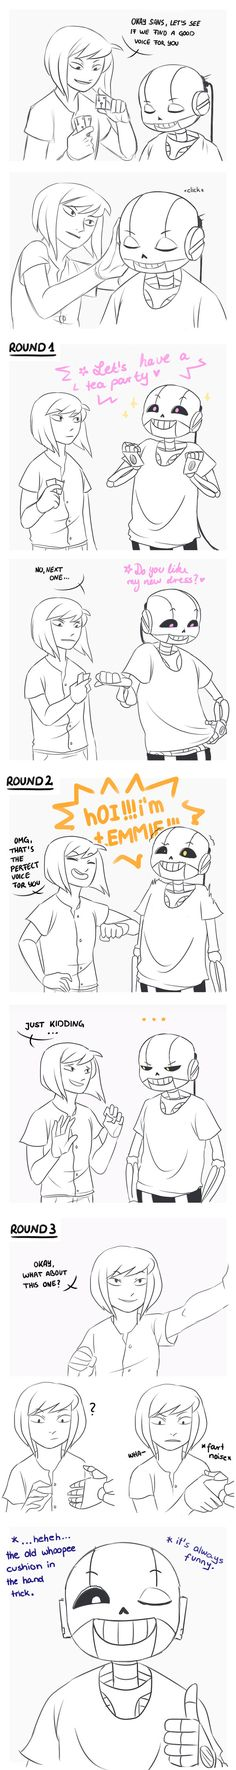 Cybertale: Sans voice disk by Ethai<<< I'm in love with this AU !!!!!